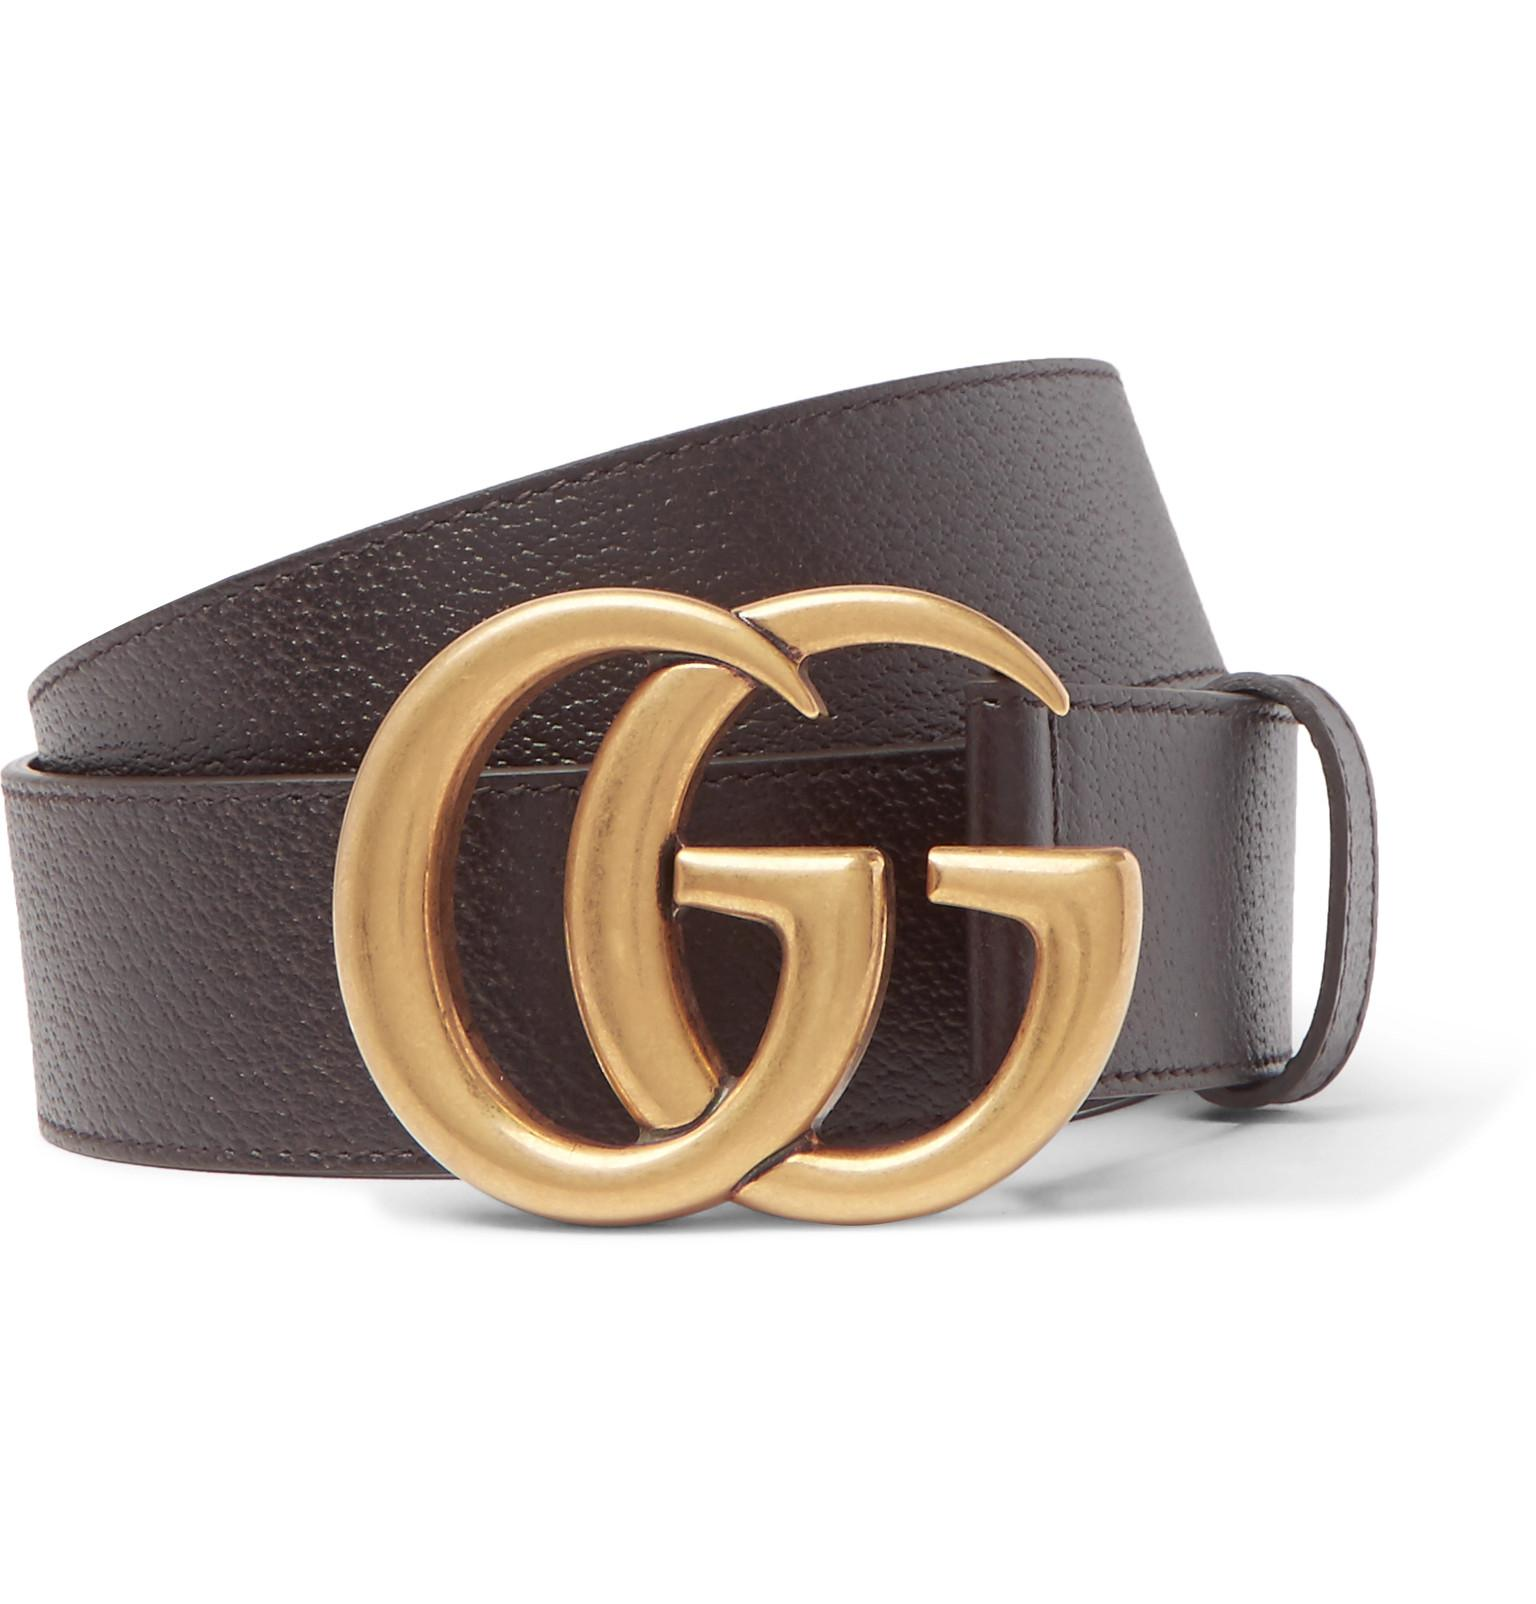 1c07f825bef Gucci - 4cm Brown Full-grain Leather Belt - Dark Brown in Brown for ...